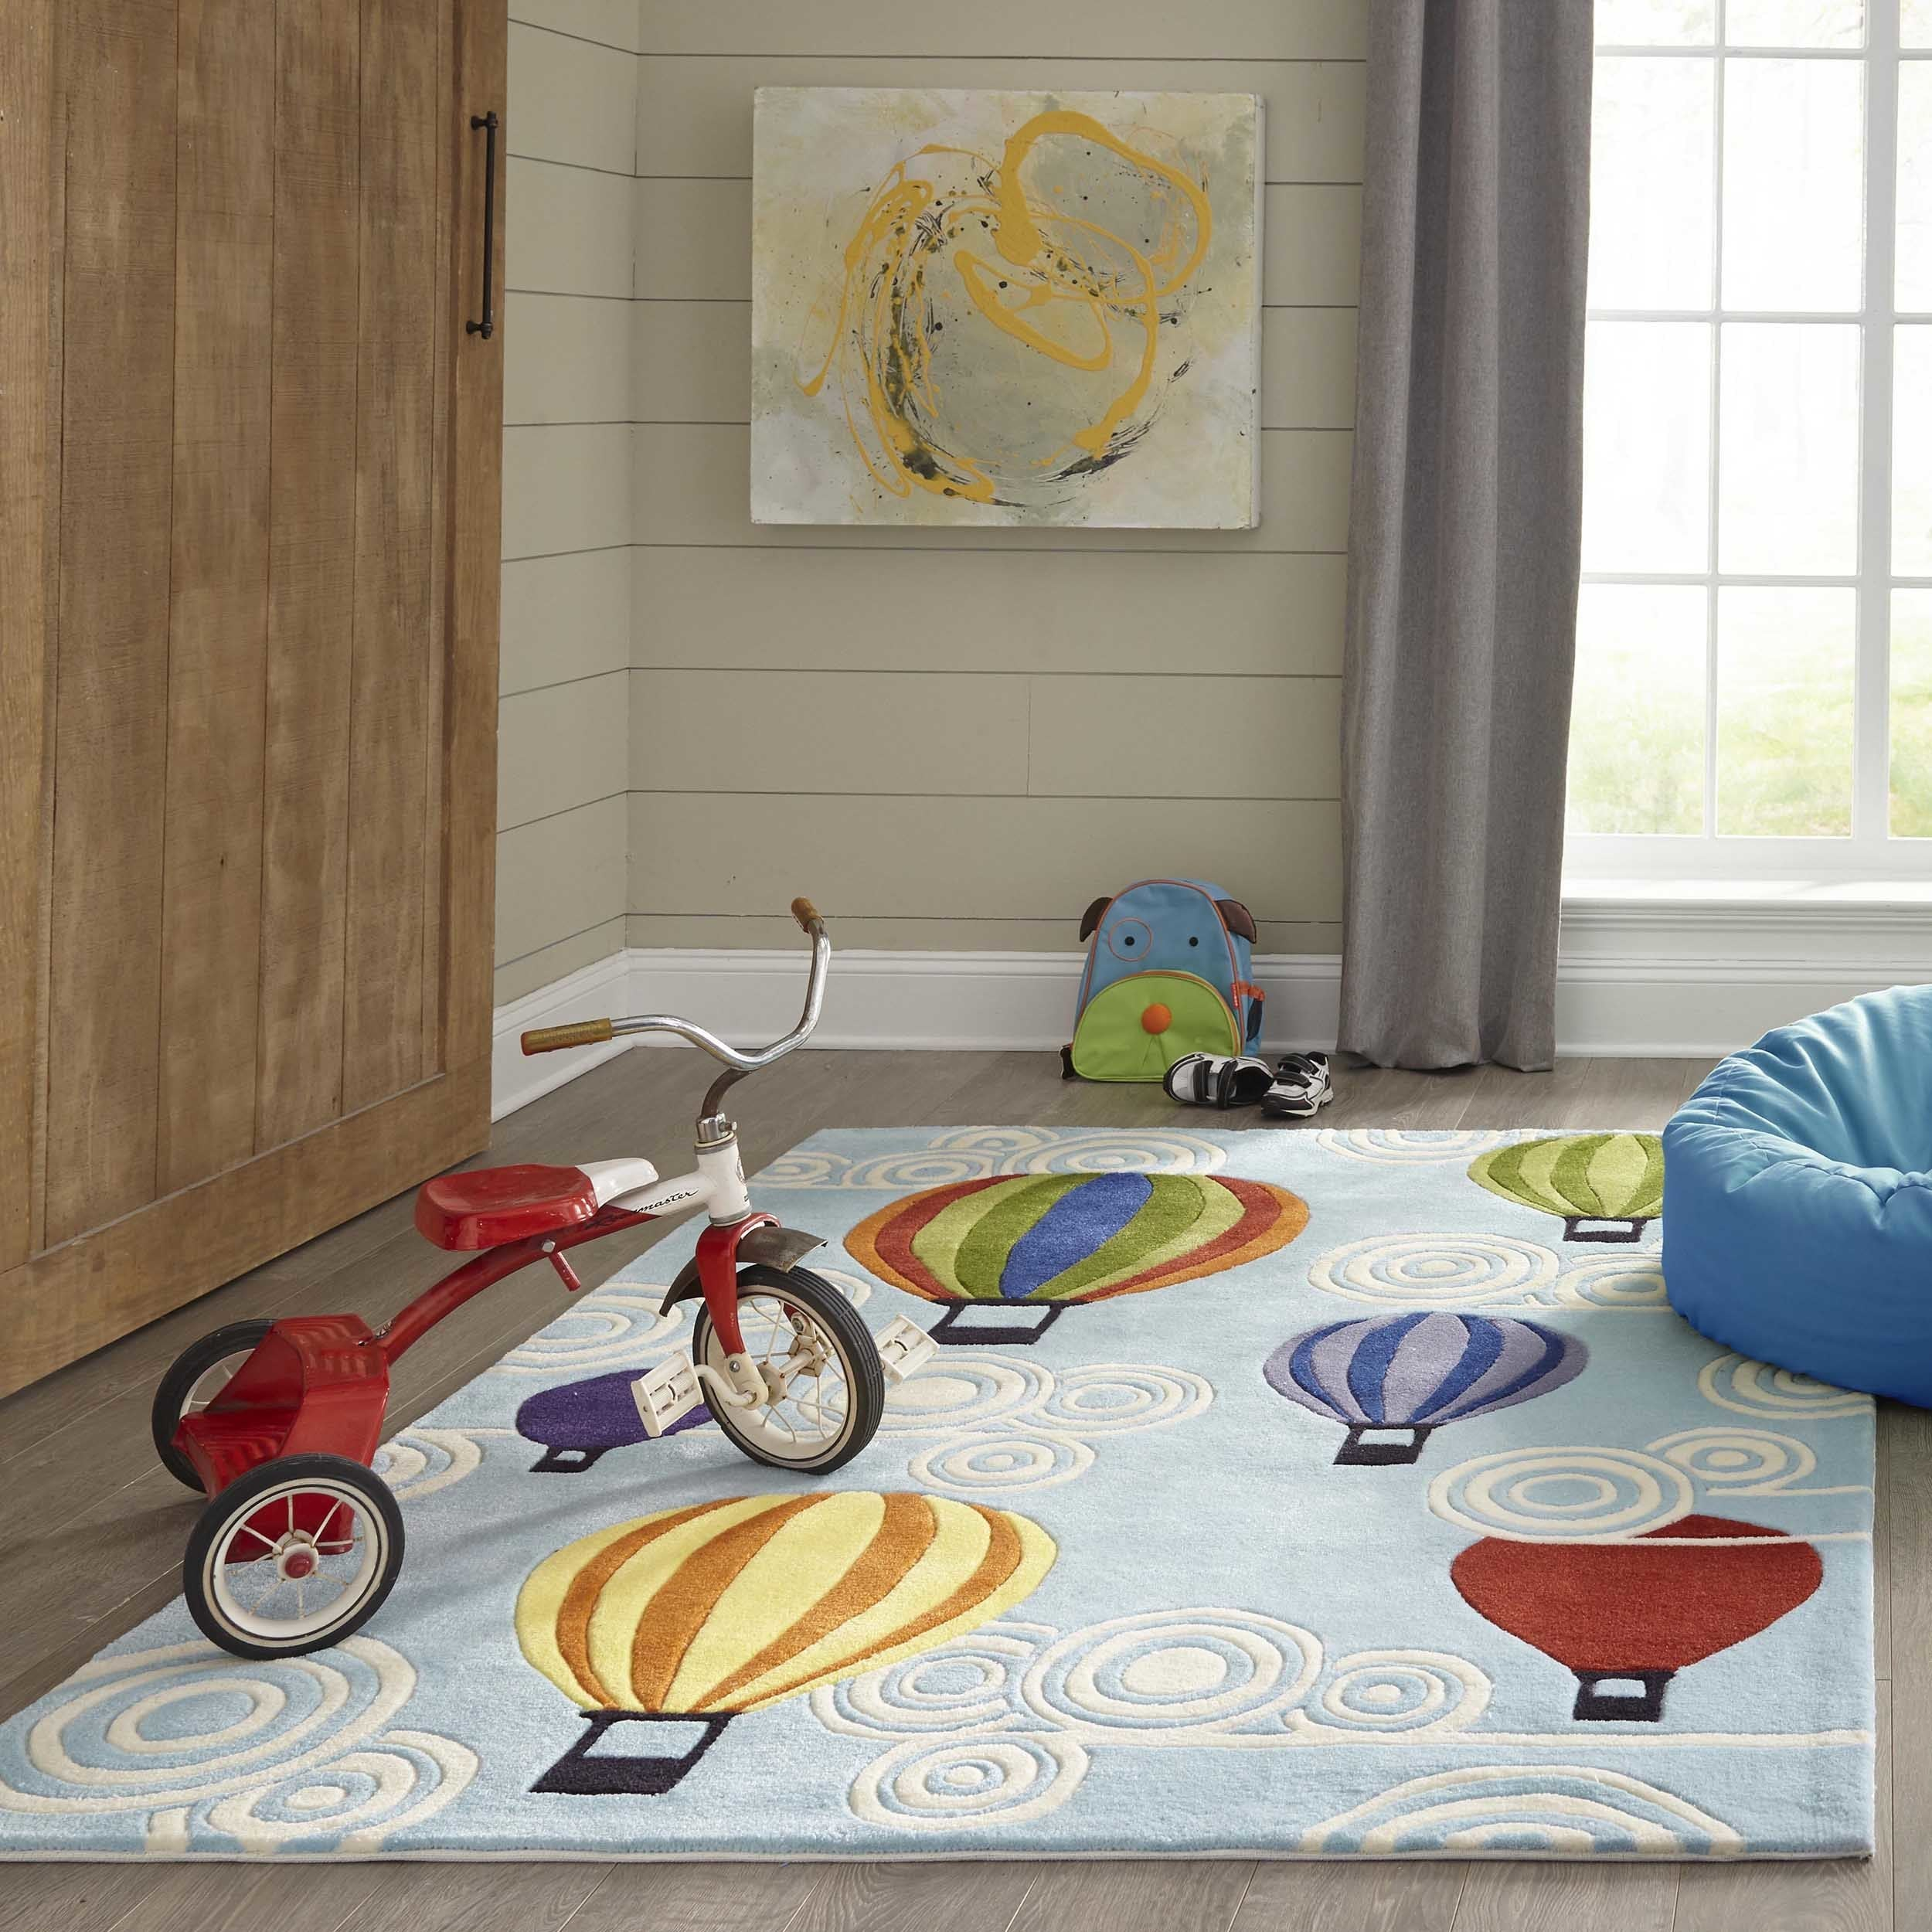 Transitional, Geometric 5x8   6x9 Area Rugs Buy Area